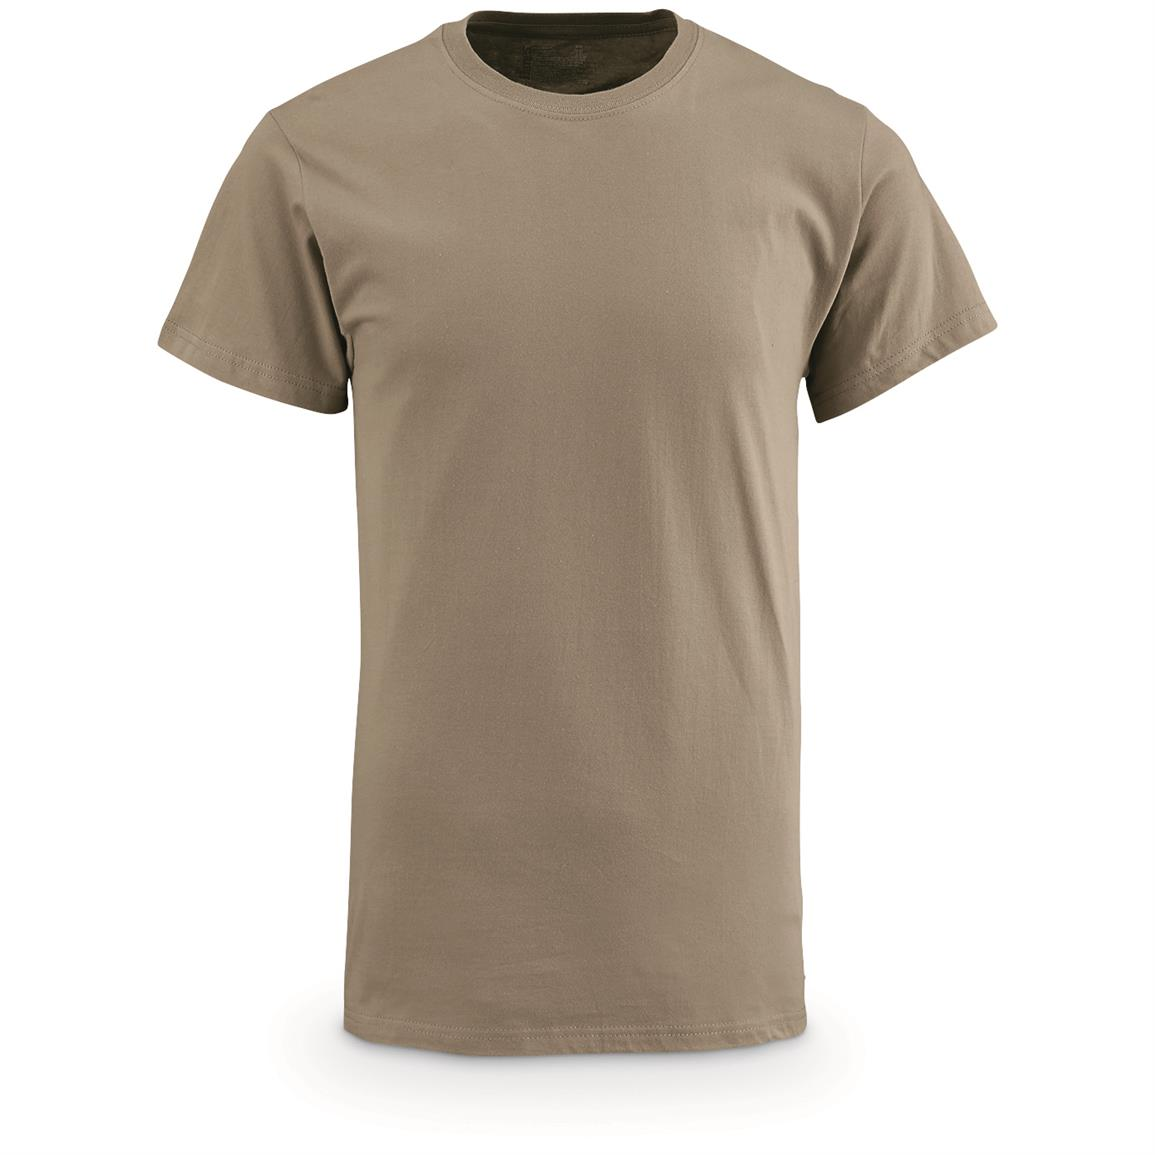 U.S. Military Issue OCP T-Shirts, New, 12 Pack